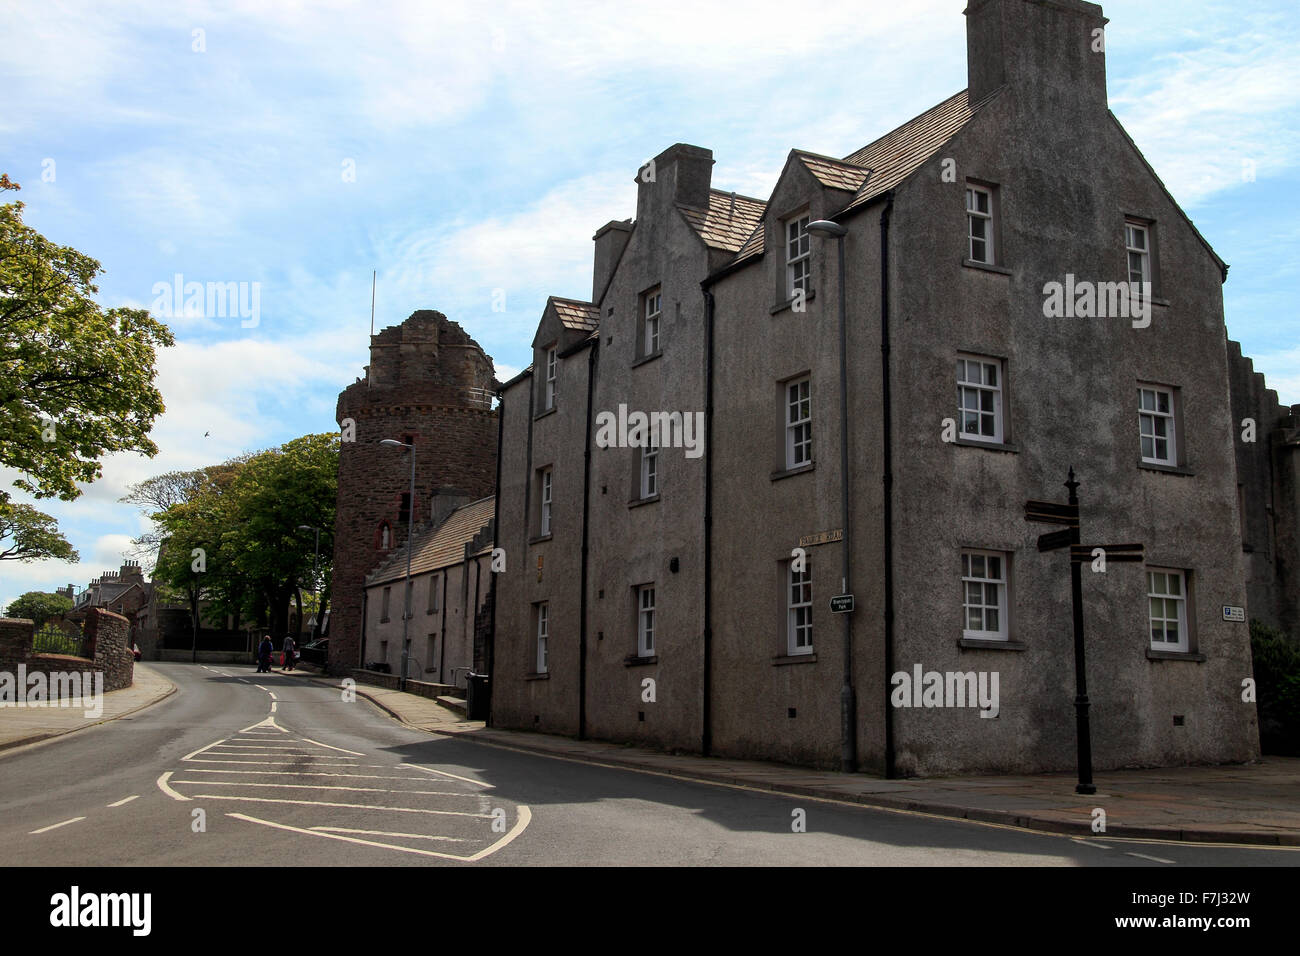 Palace Road with Bishop's Palace in the background, Kirkwall Orkney Islands Scotland UK - Stock Image